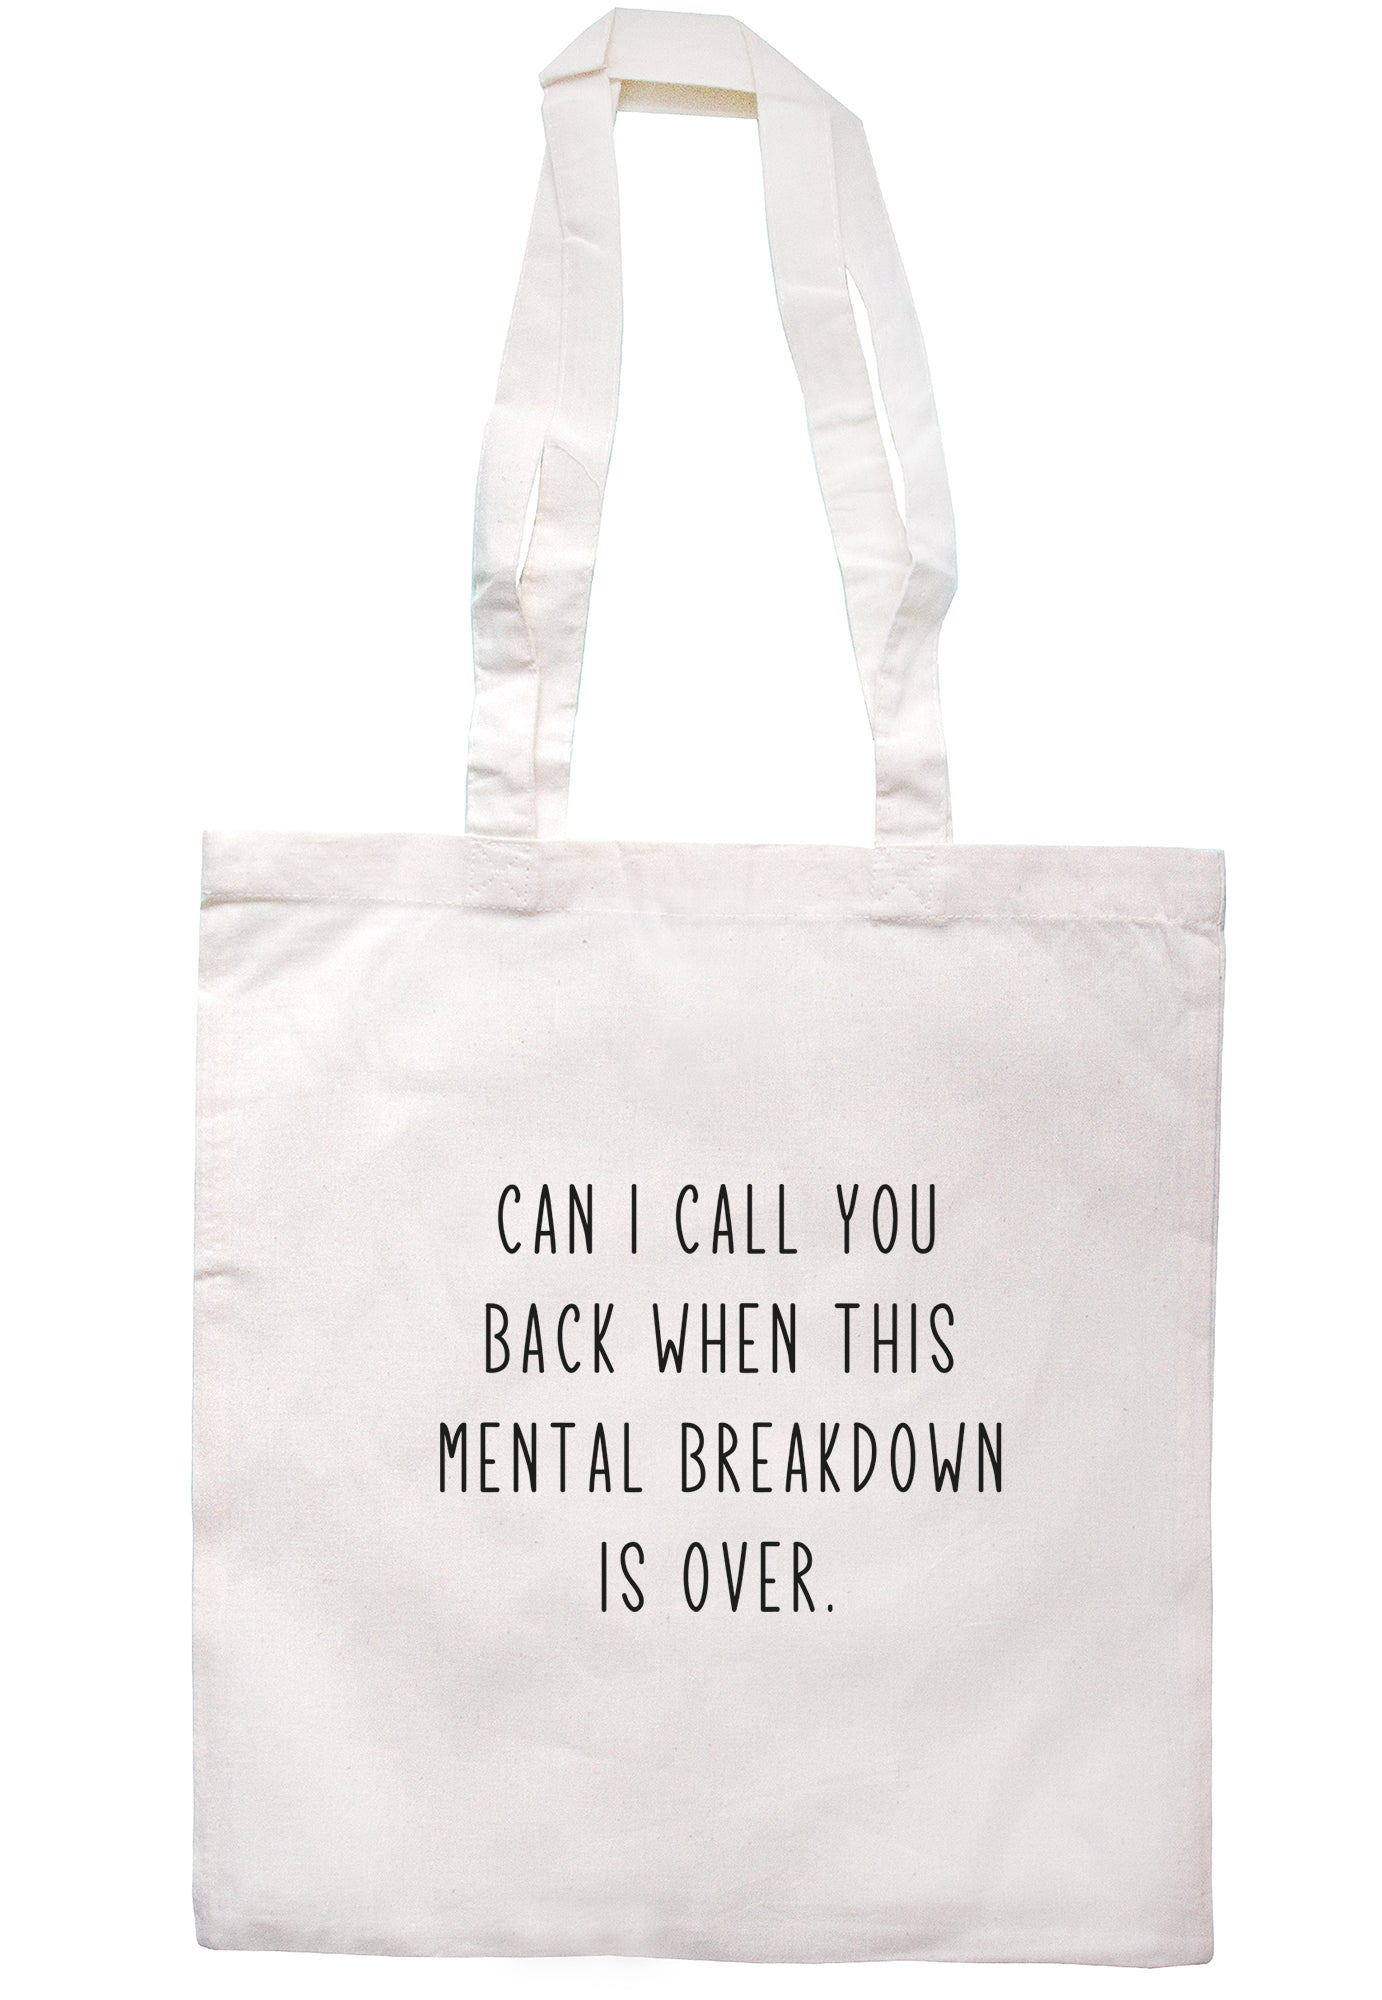 Can I Call You Back When This Mental Breakdown Is Over Tote Bag S1145 - Illustrated Identity Ltd.